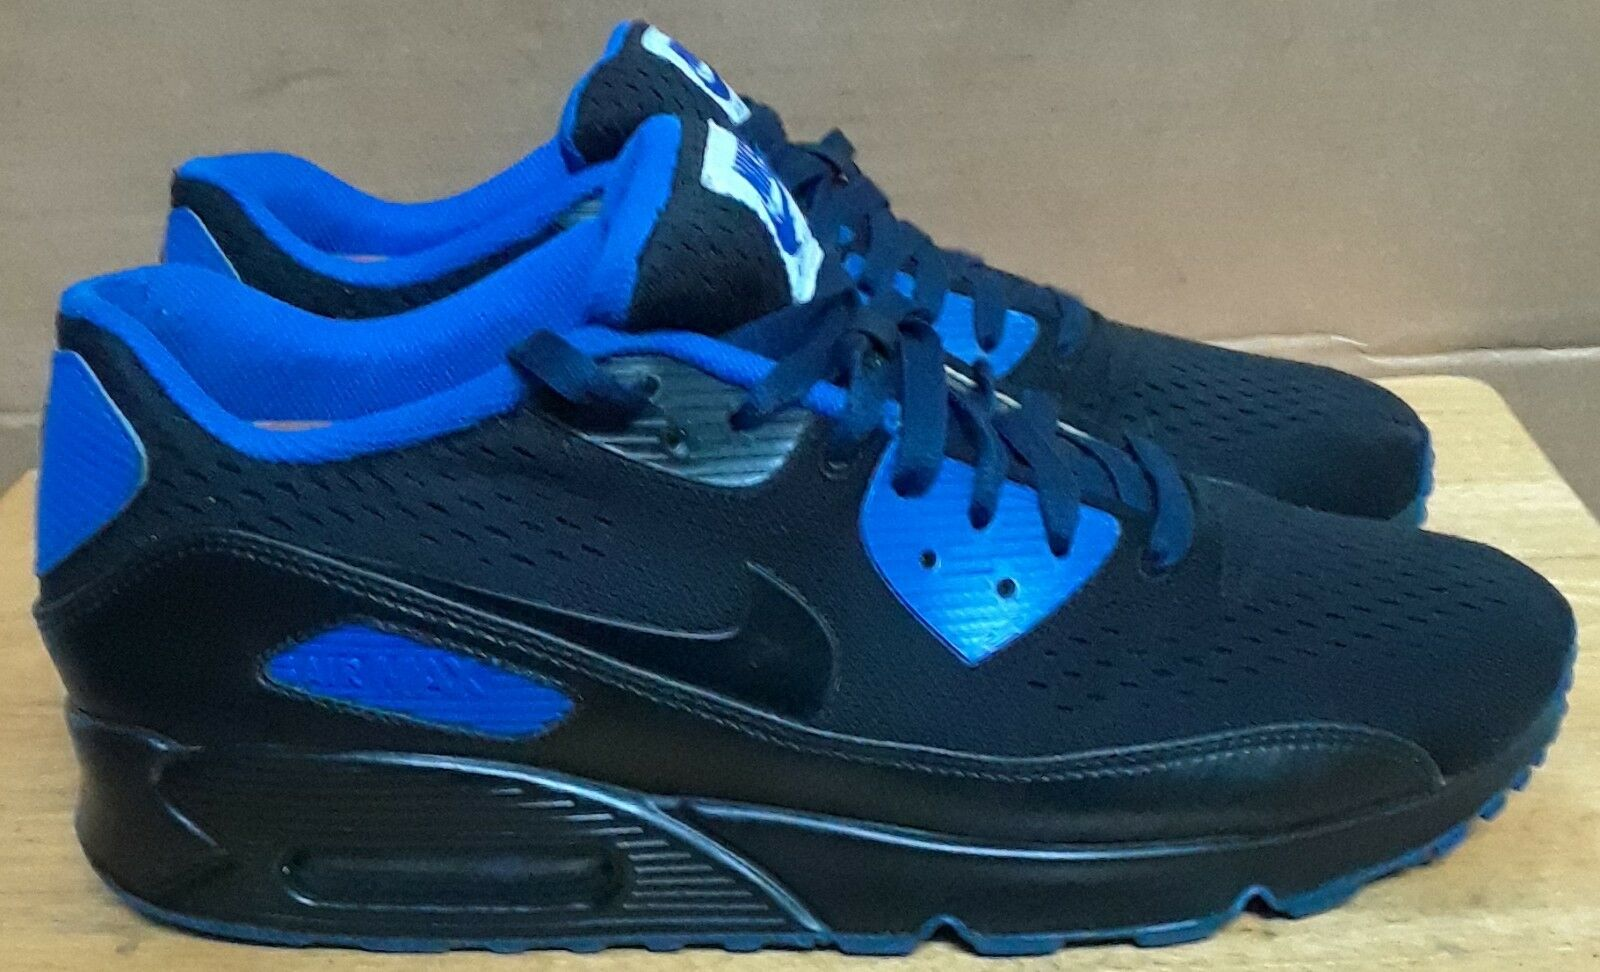 Nike Air Max 90 Premiun ID 822563 981 Black bluee. Sz 12